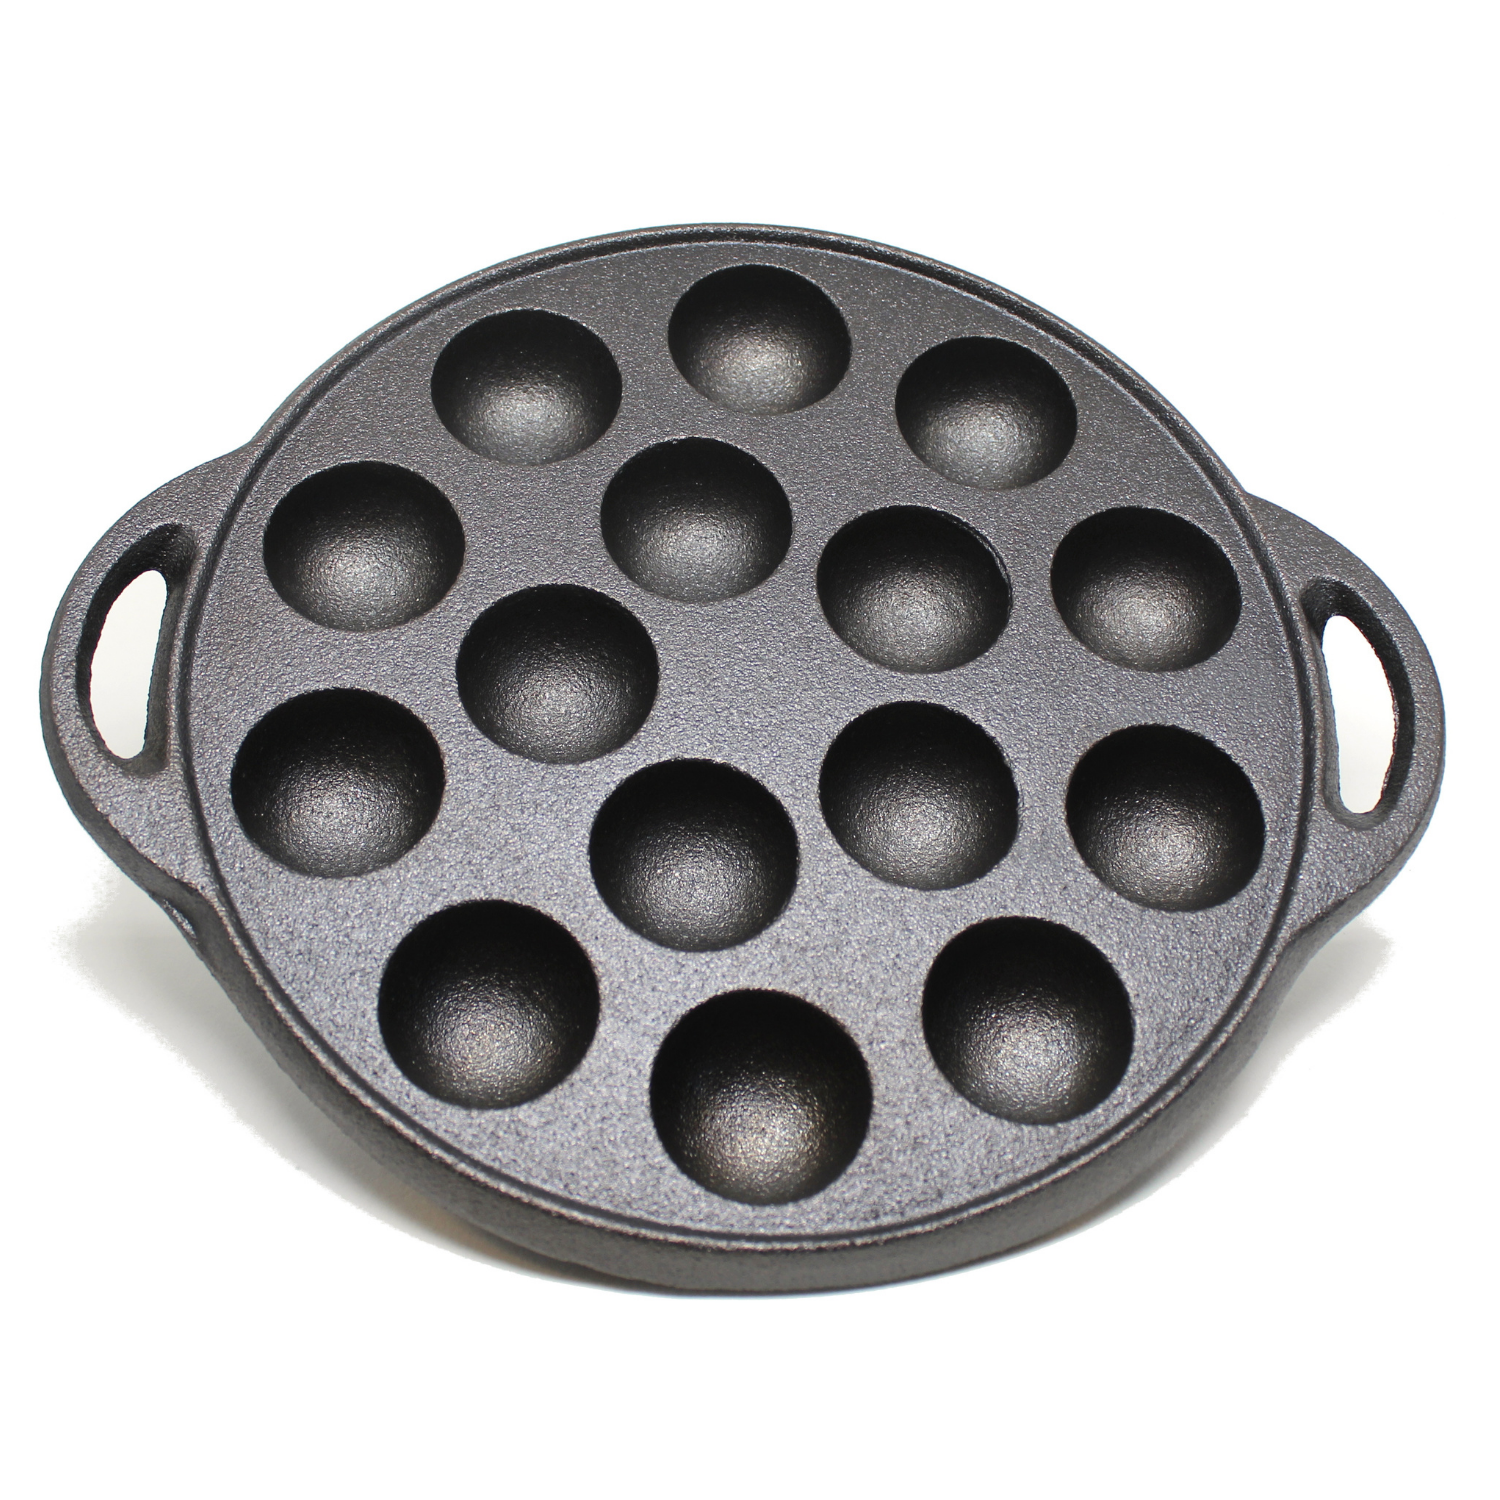 "Kasian House Cast Iron Griddle - 1.5"" Diameter Half Sphere Molds, Pre-Seasoned - Poffertjes, Pancake Balls, Takoyaki, Aebleskiver"